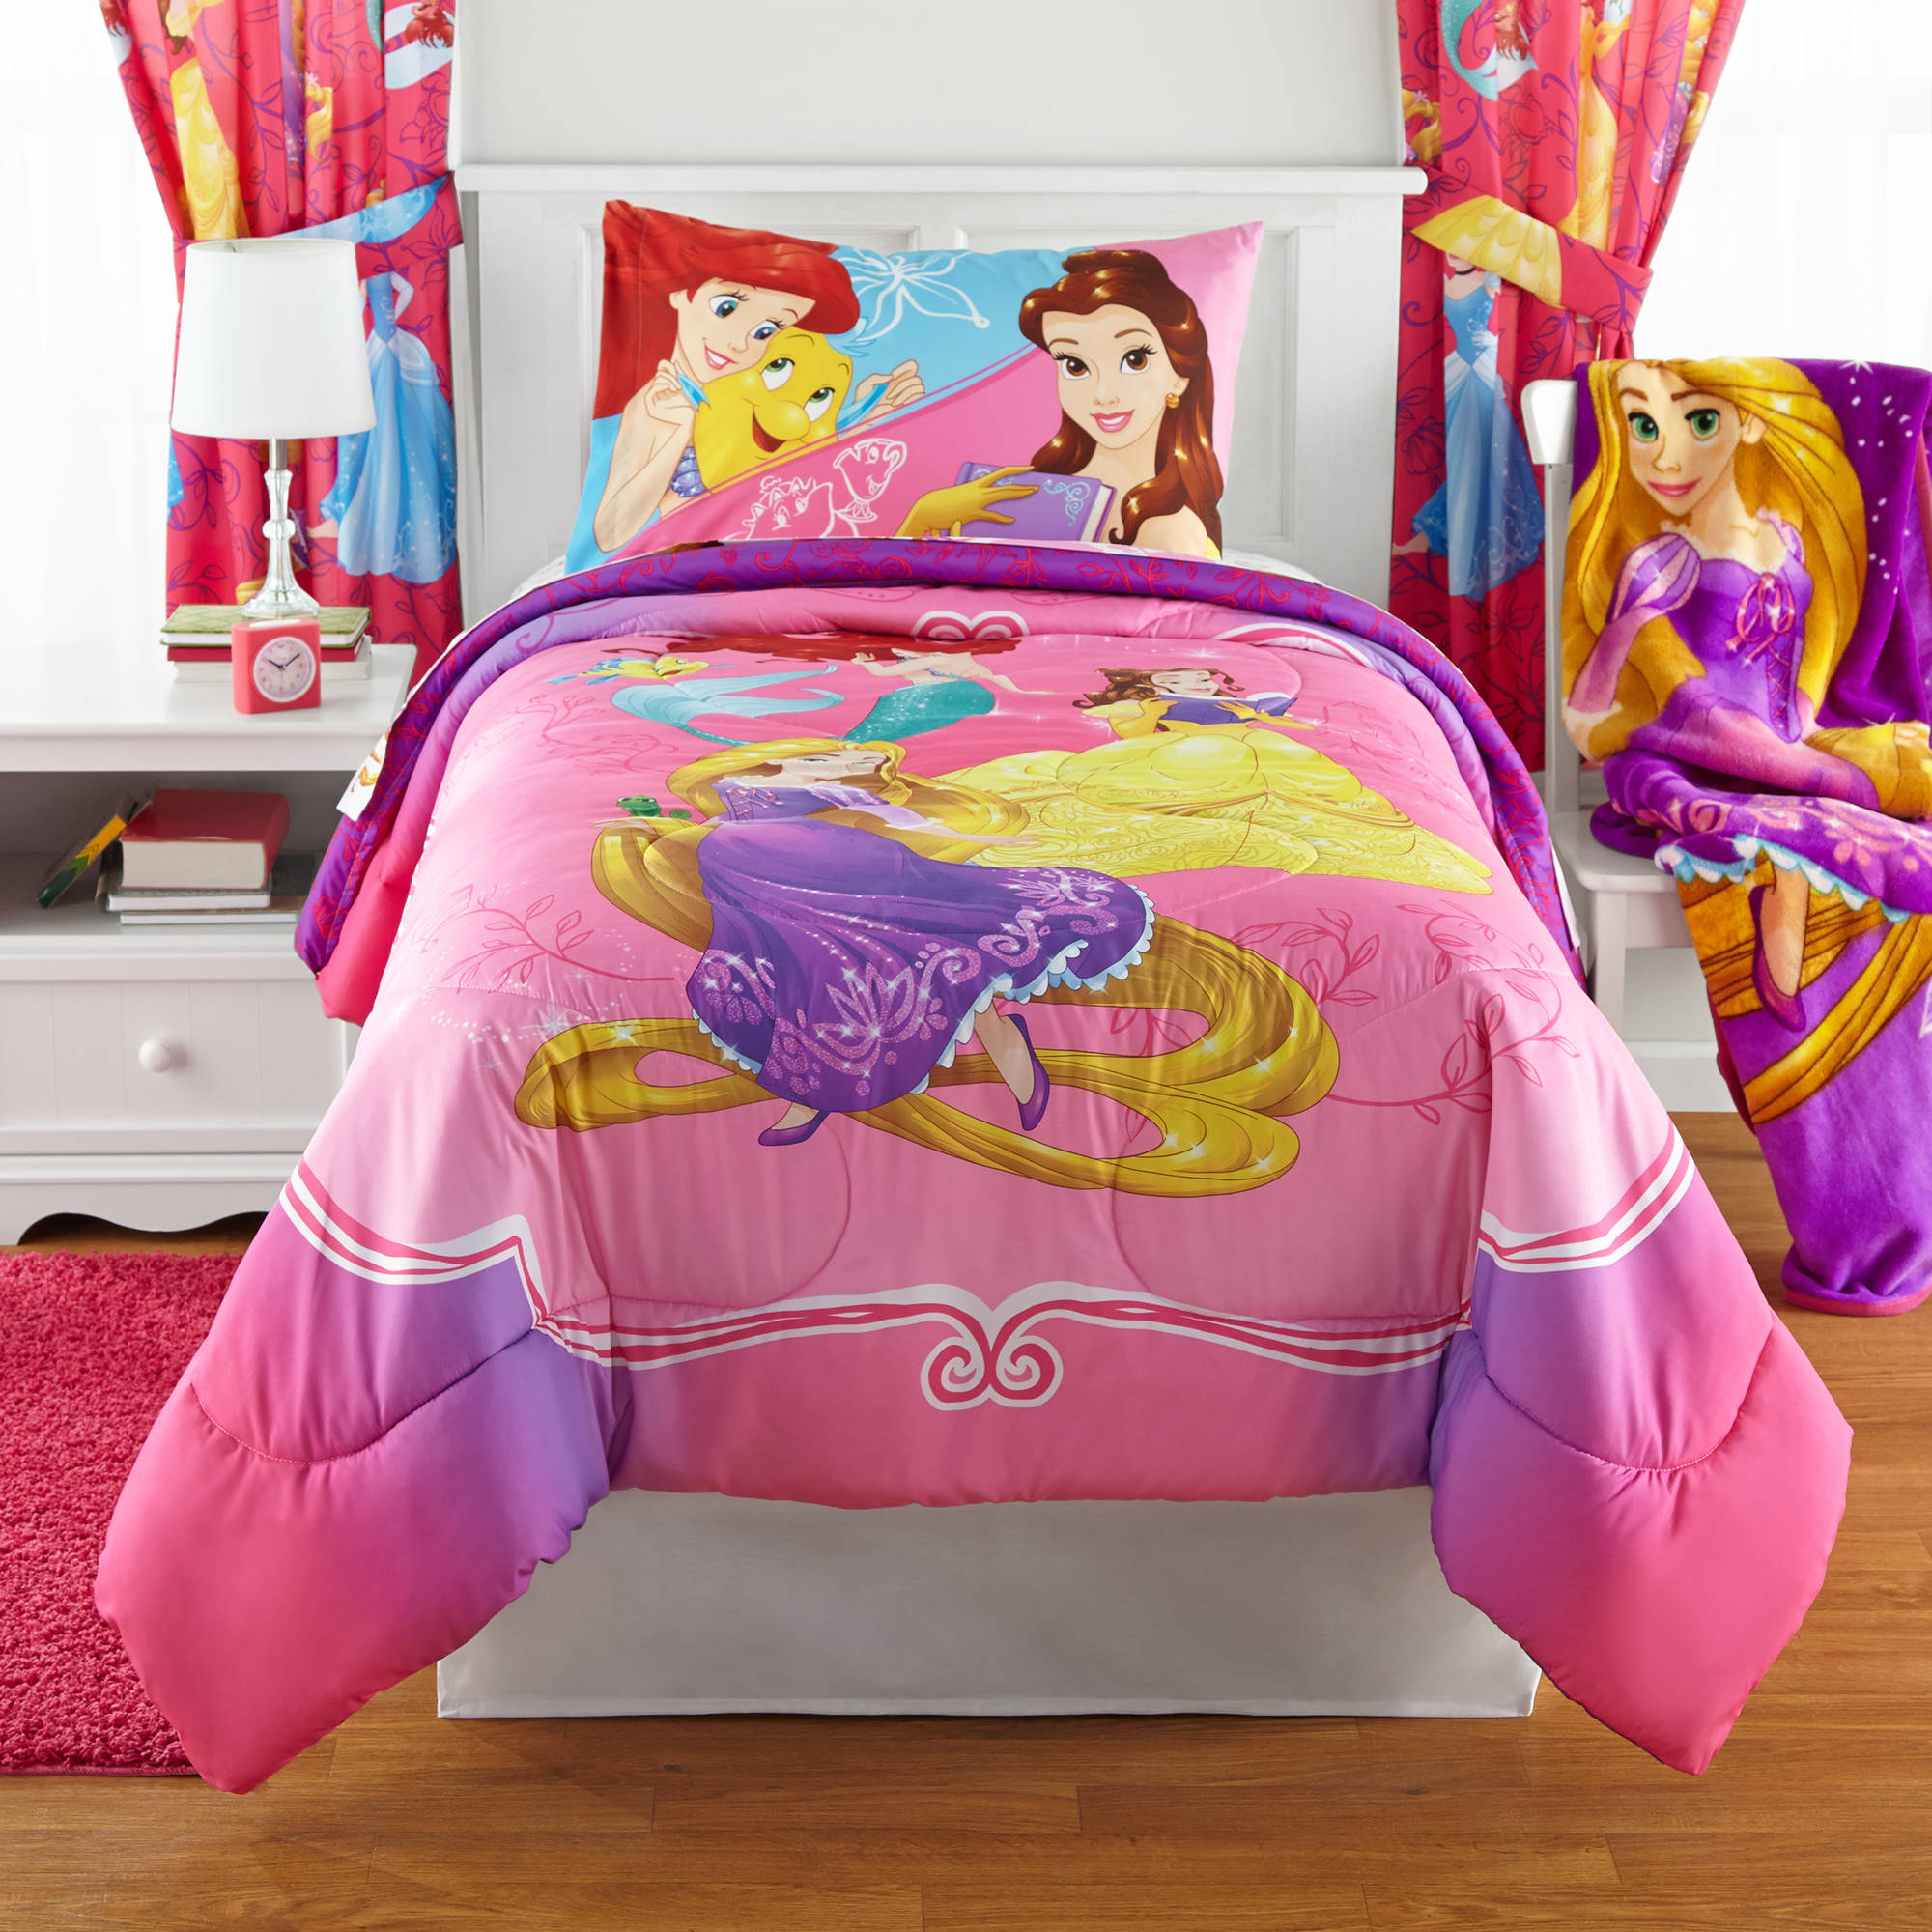 Disney Princess Bedazzling Princess Reversible Twin/Full Bedding Comforter